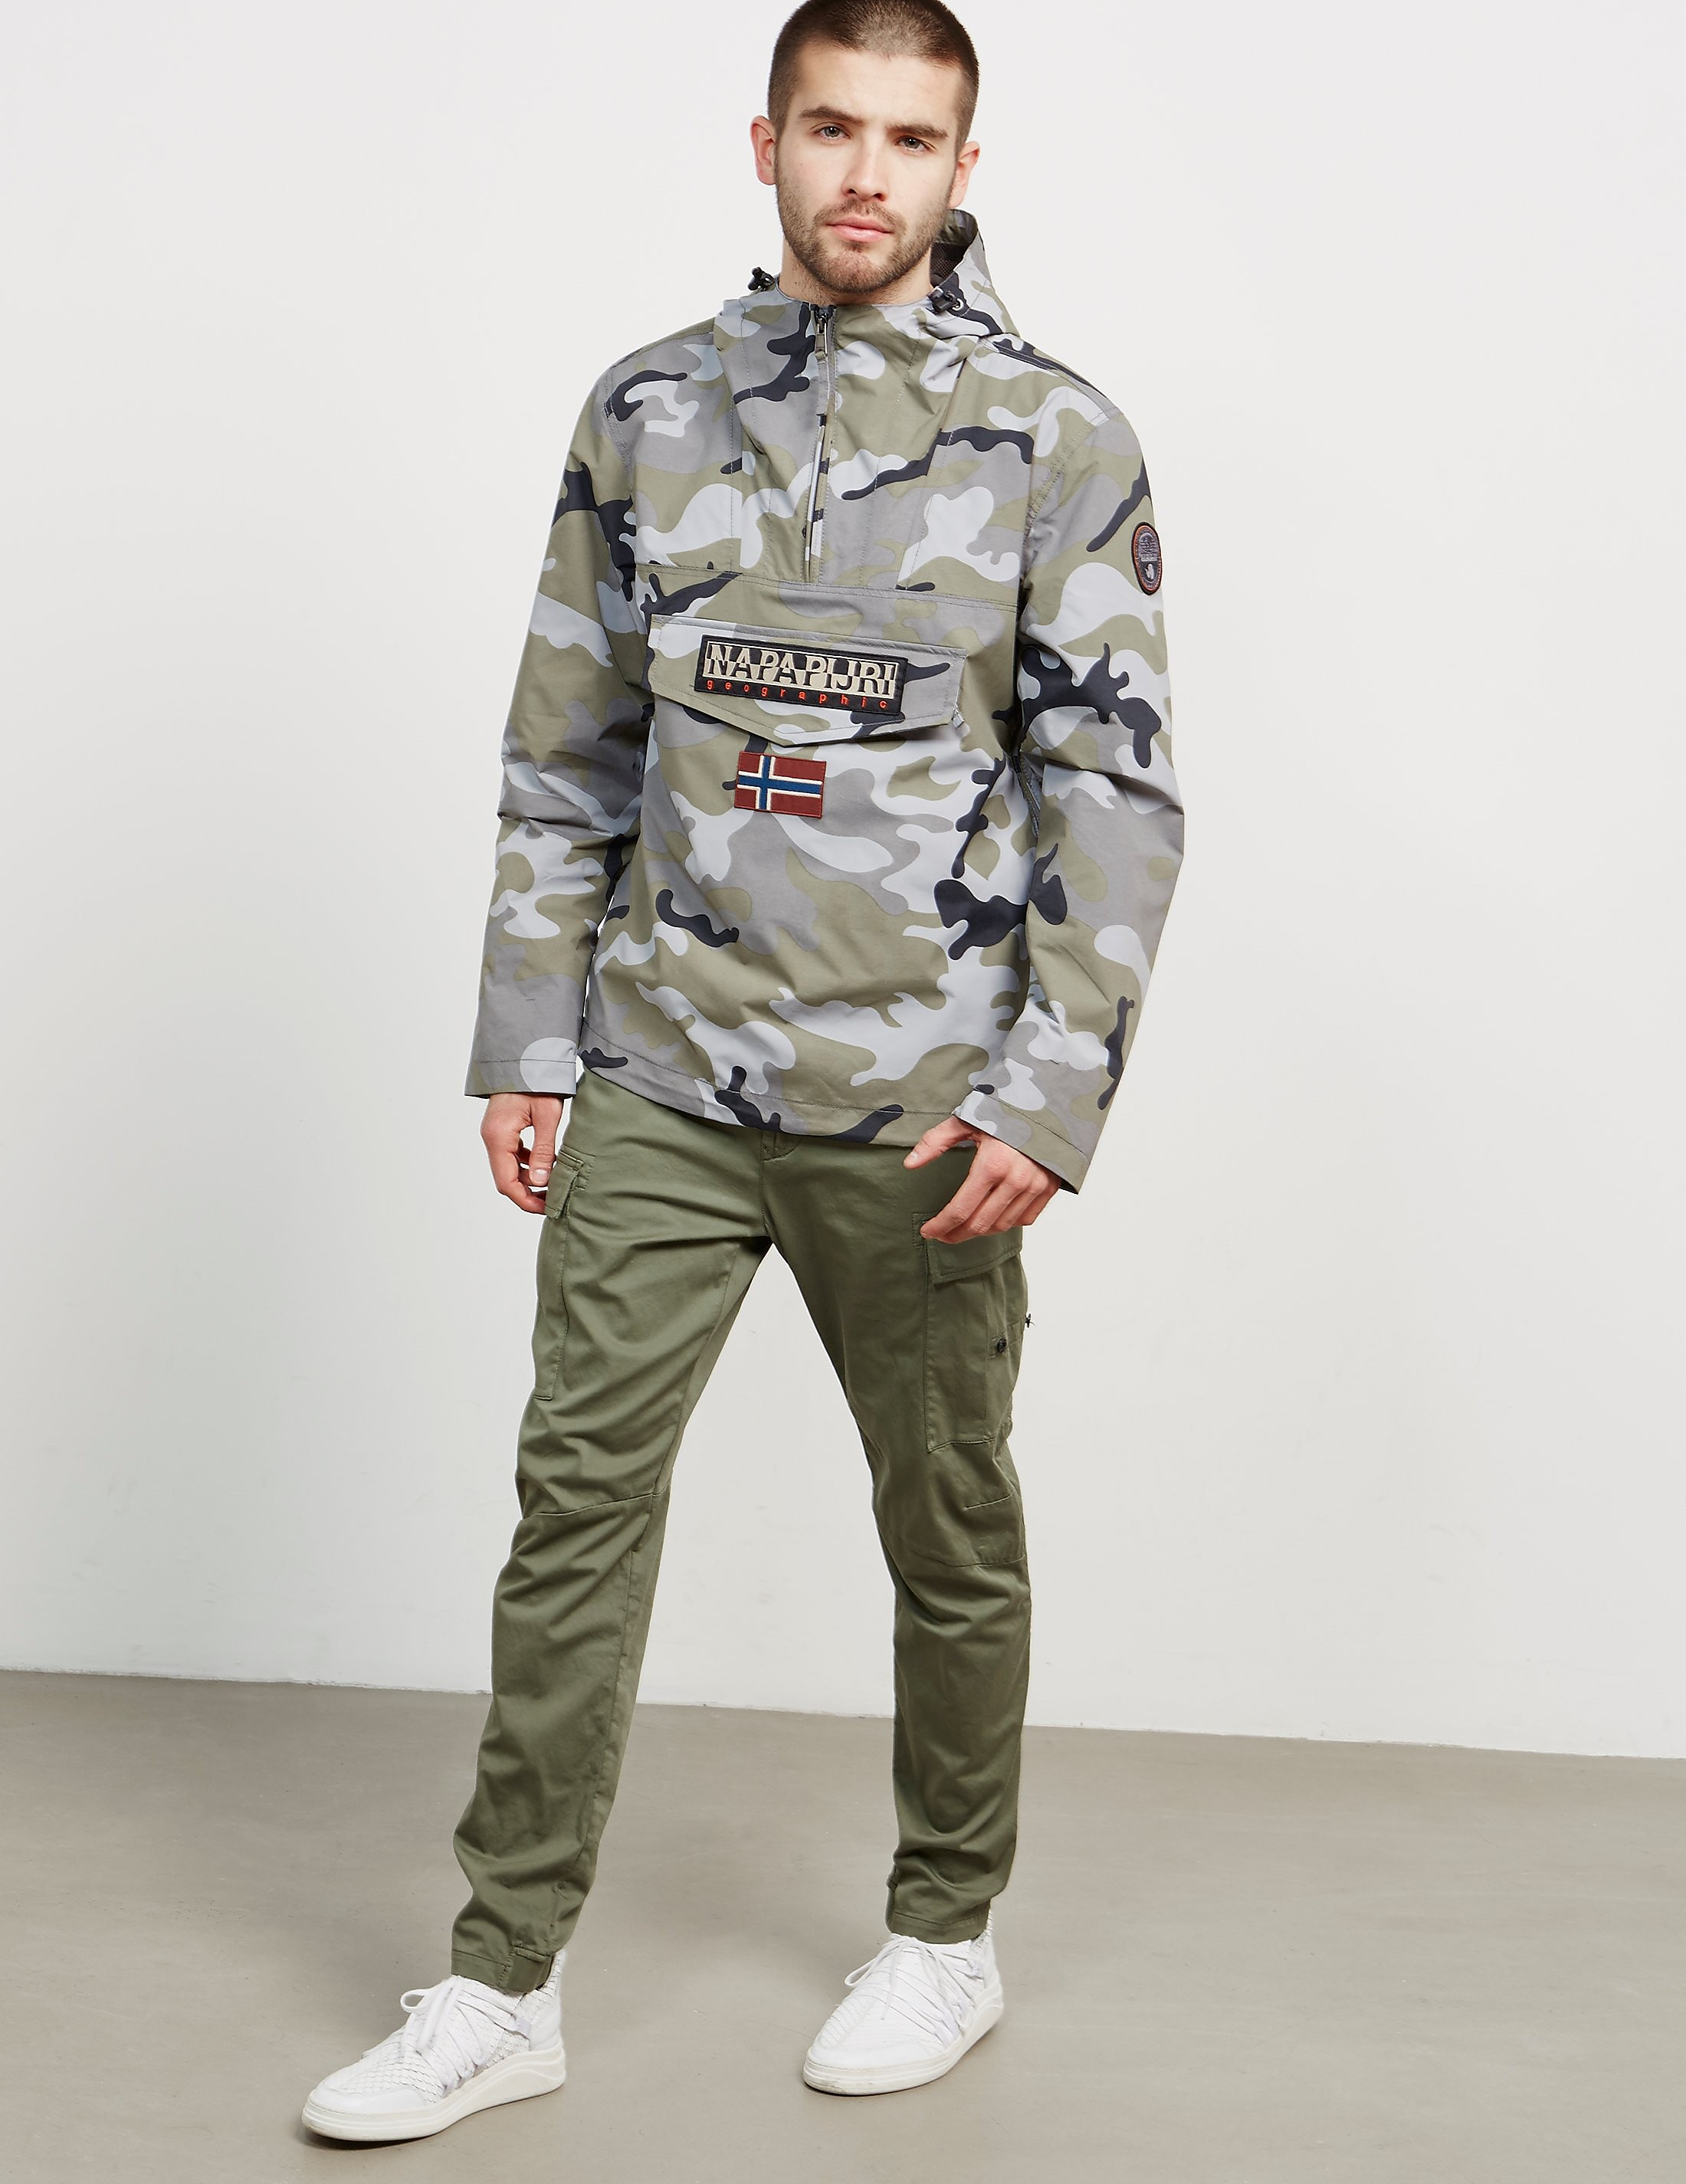 Napapijri Rainforest Summer Camo Jacket - Exclusive